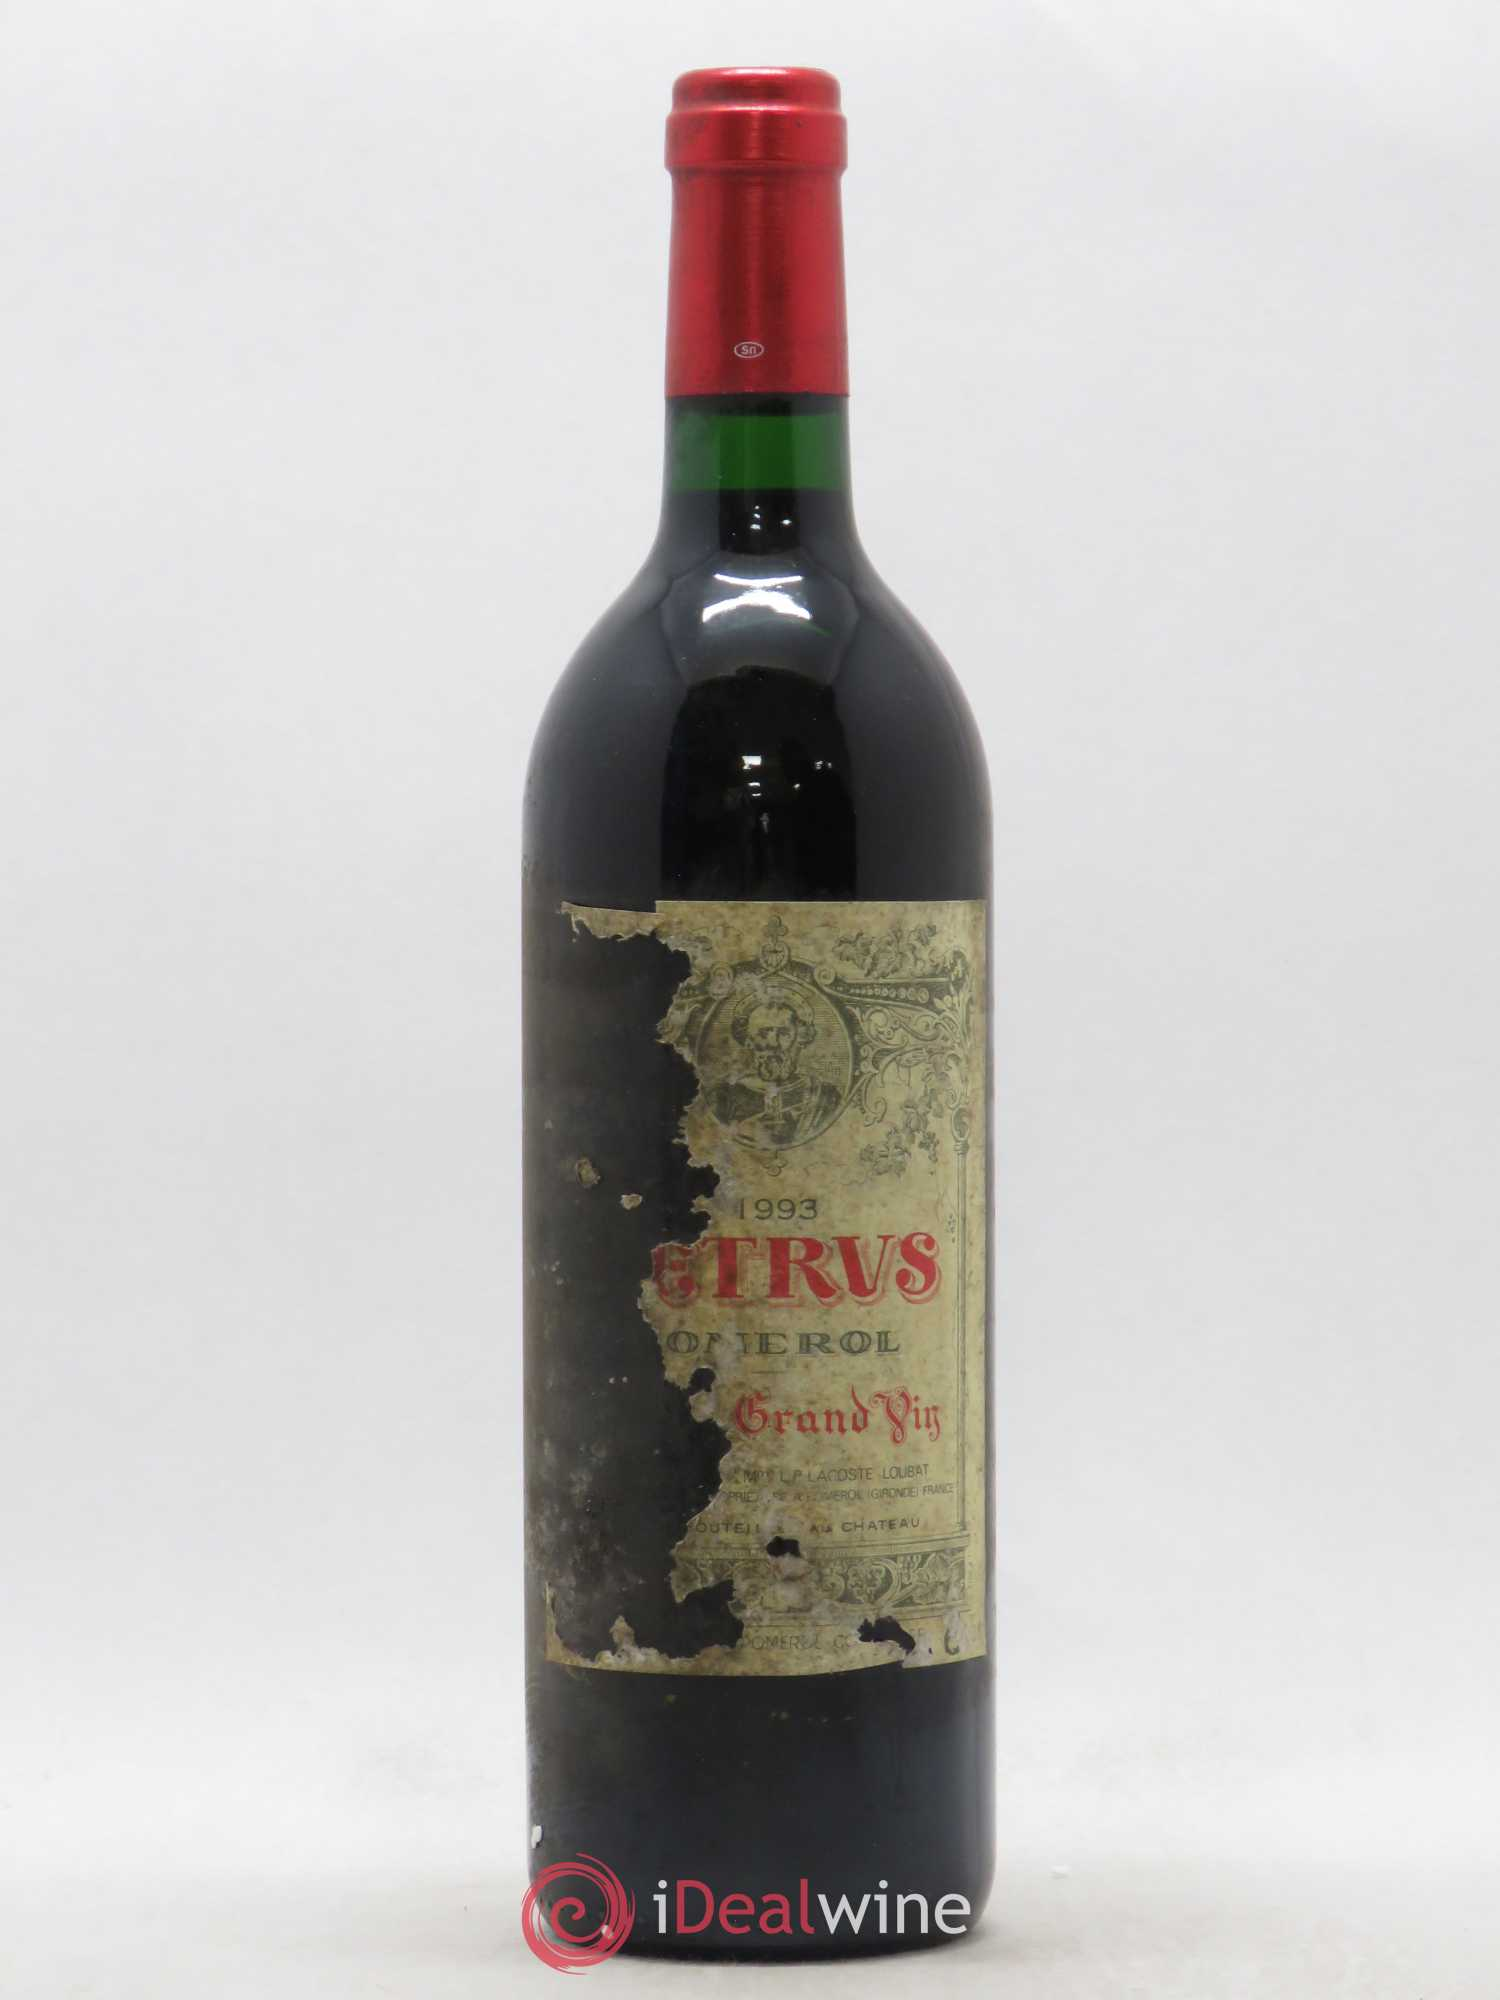 Petrus  1993 - Lot of 1 Bottle